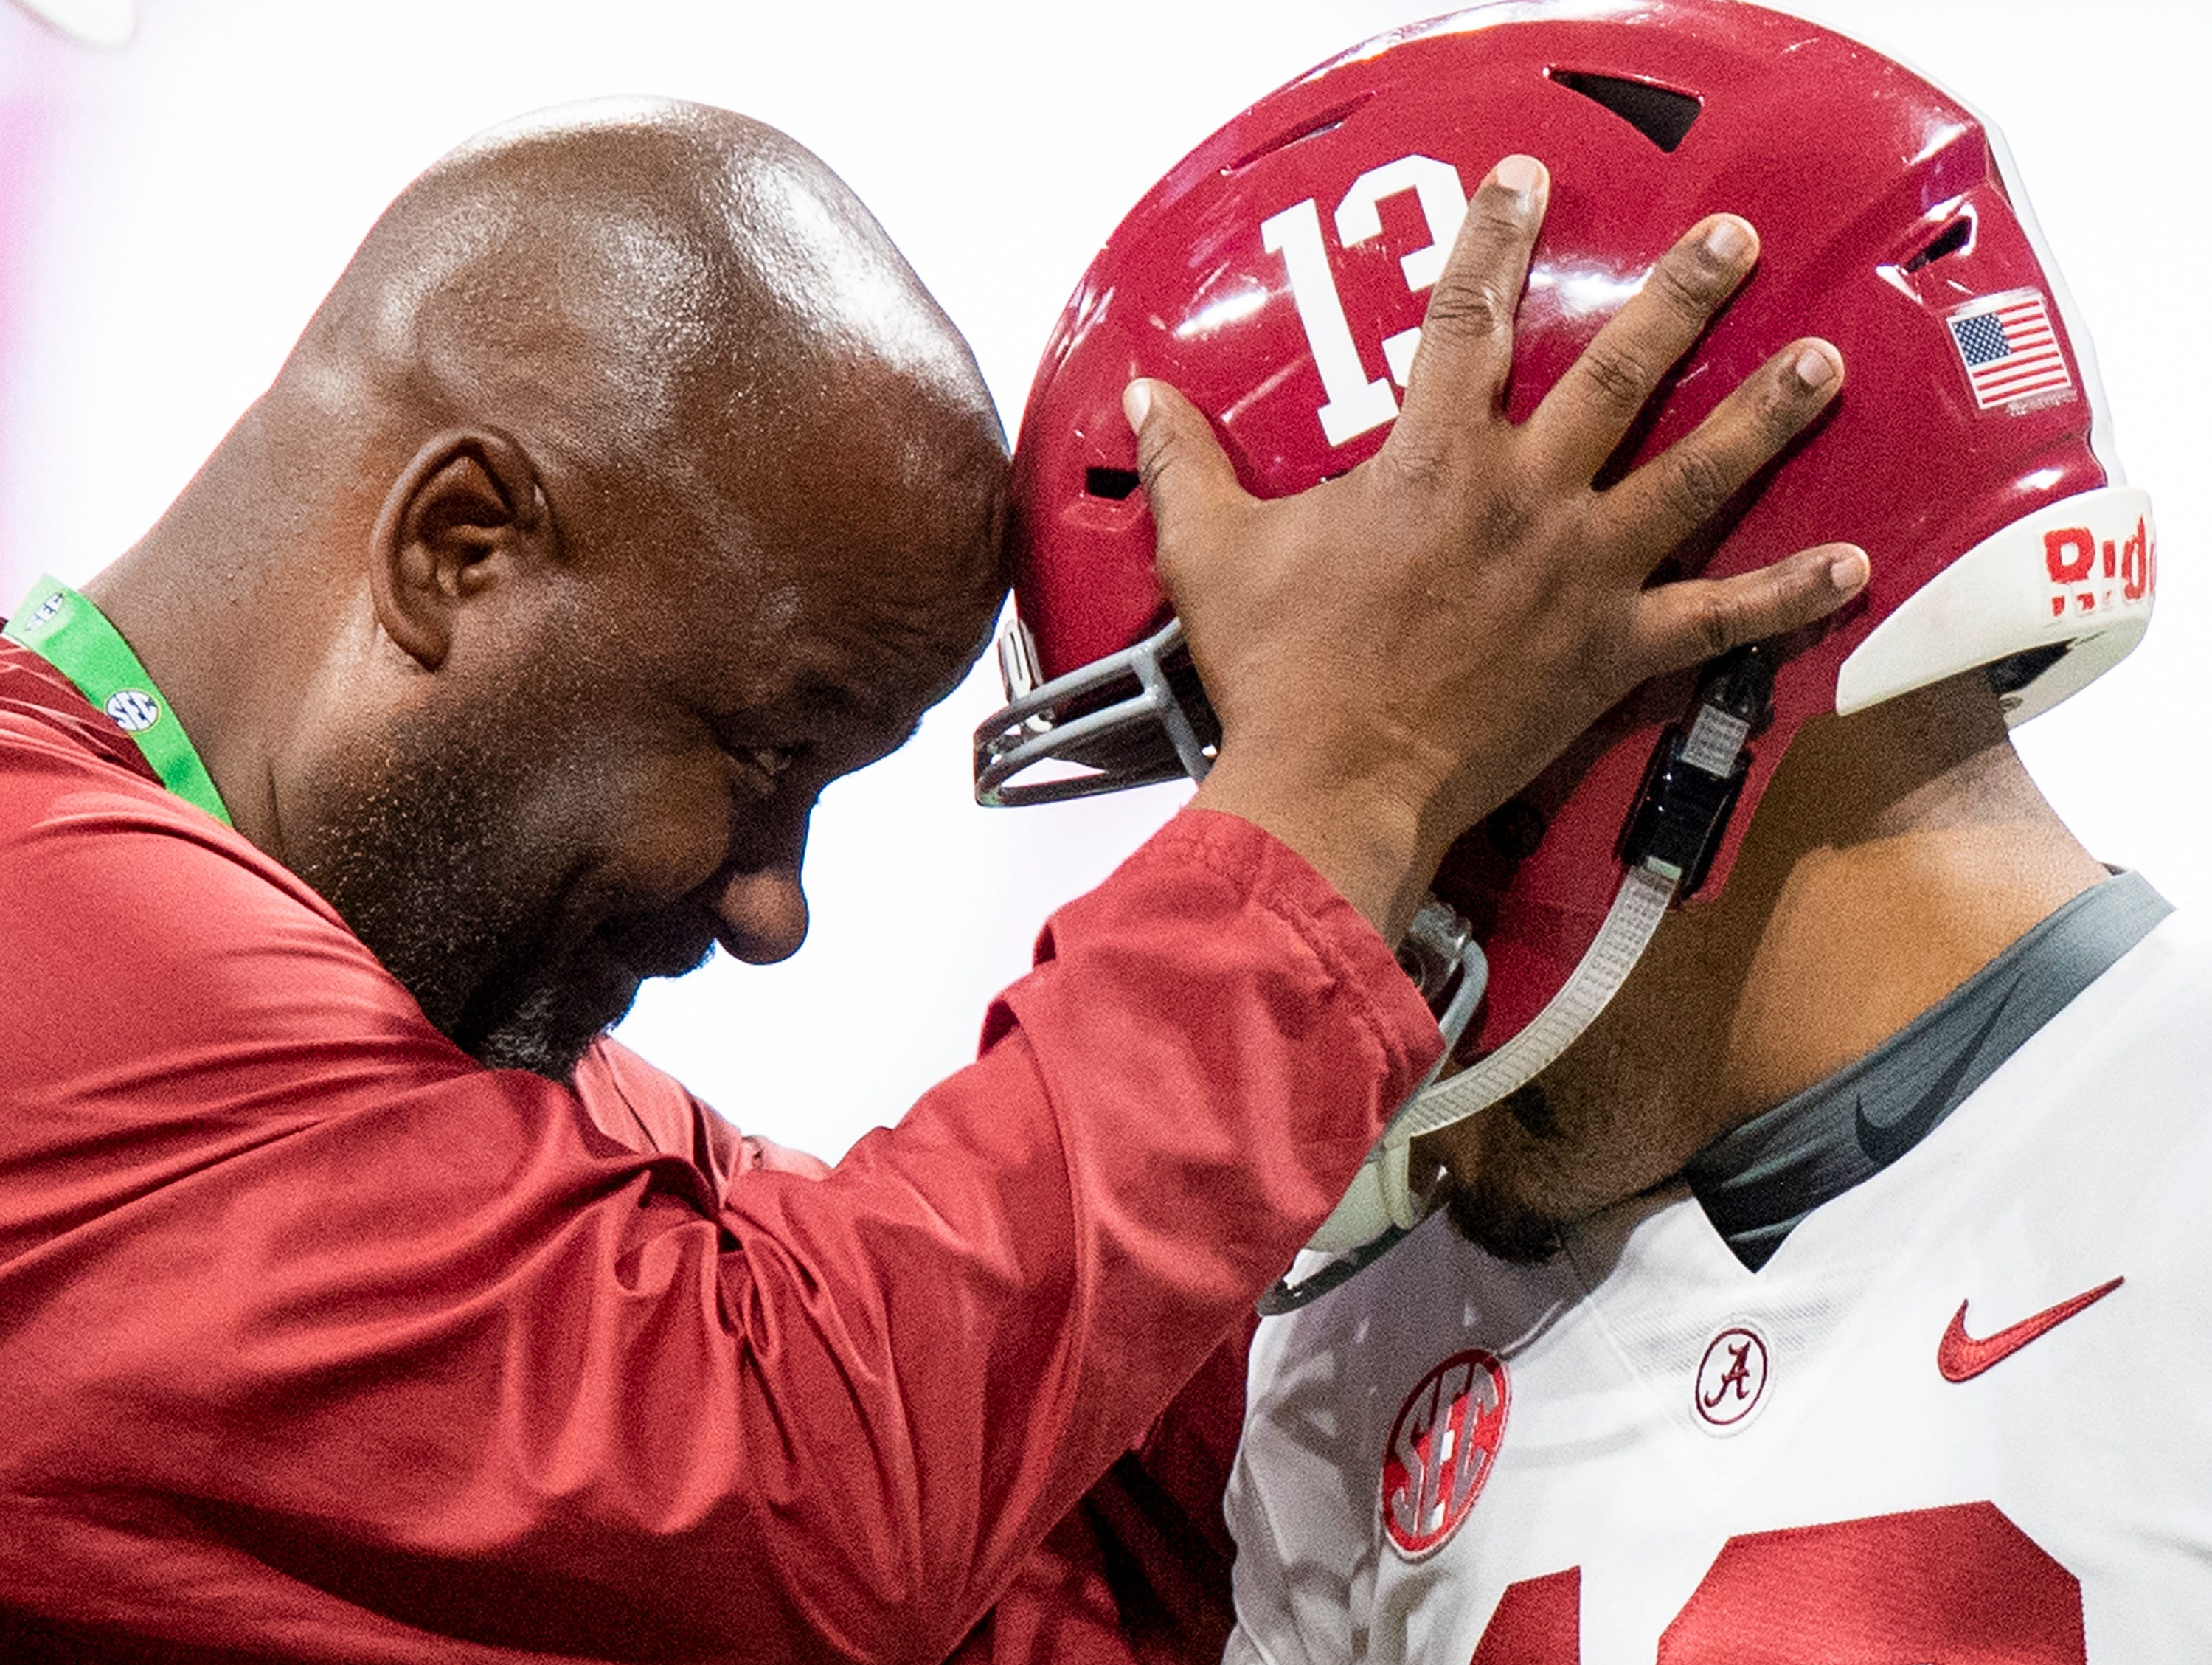 Alabama quarterback Tua Tagovailoa (13) and offensive coordinator Michael Locksley during warmups before the SEC Championship Game at Mercedes Benz Stadium in Atlanta, Ga., on Saturday December 1, 2018.